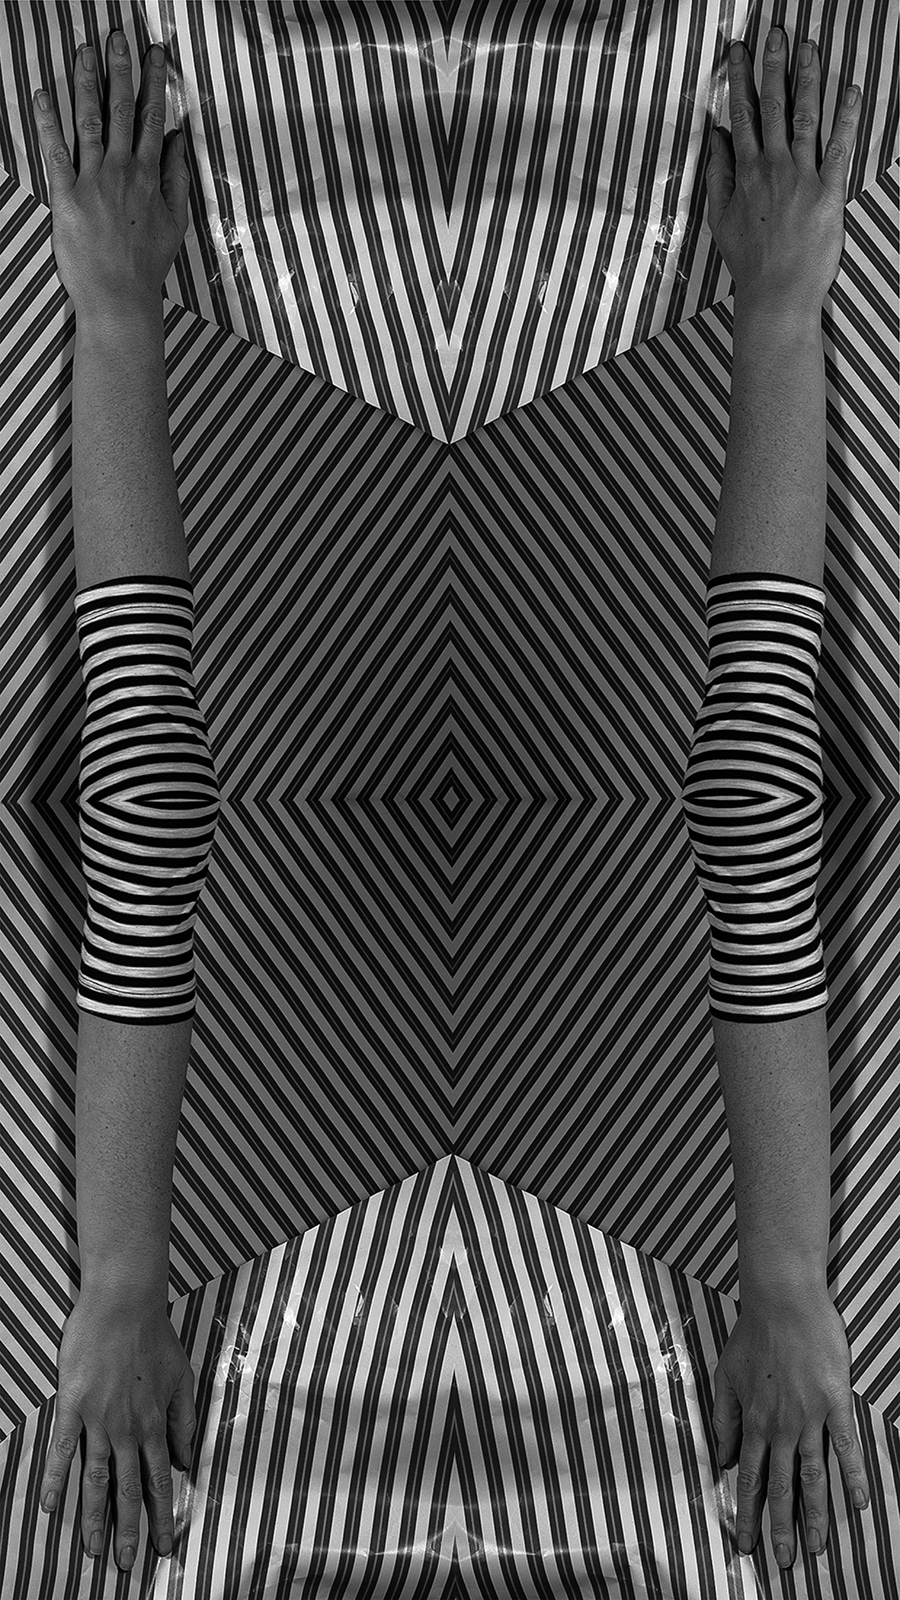 Illusion No. 2 , 15 by 25 inches, Archival Inkjet print on wall fabric, 2018, $500 © Ashley Whitt